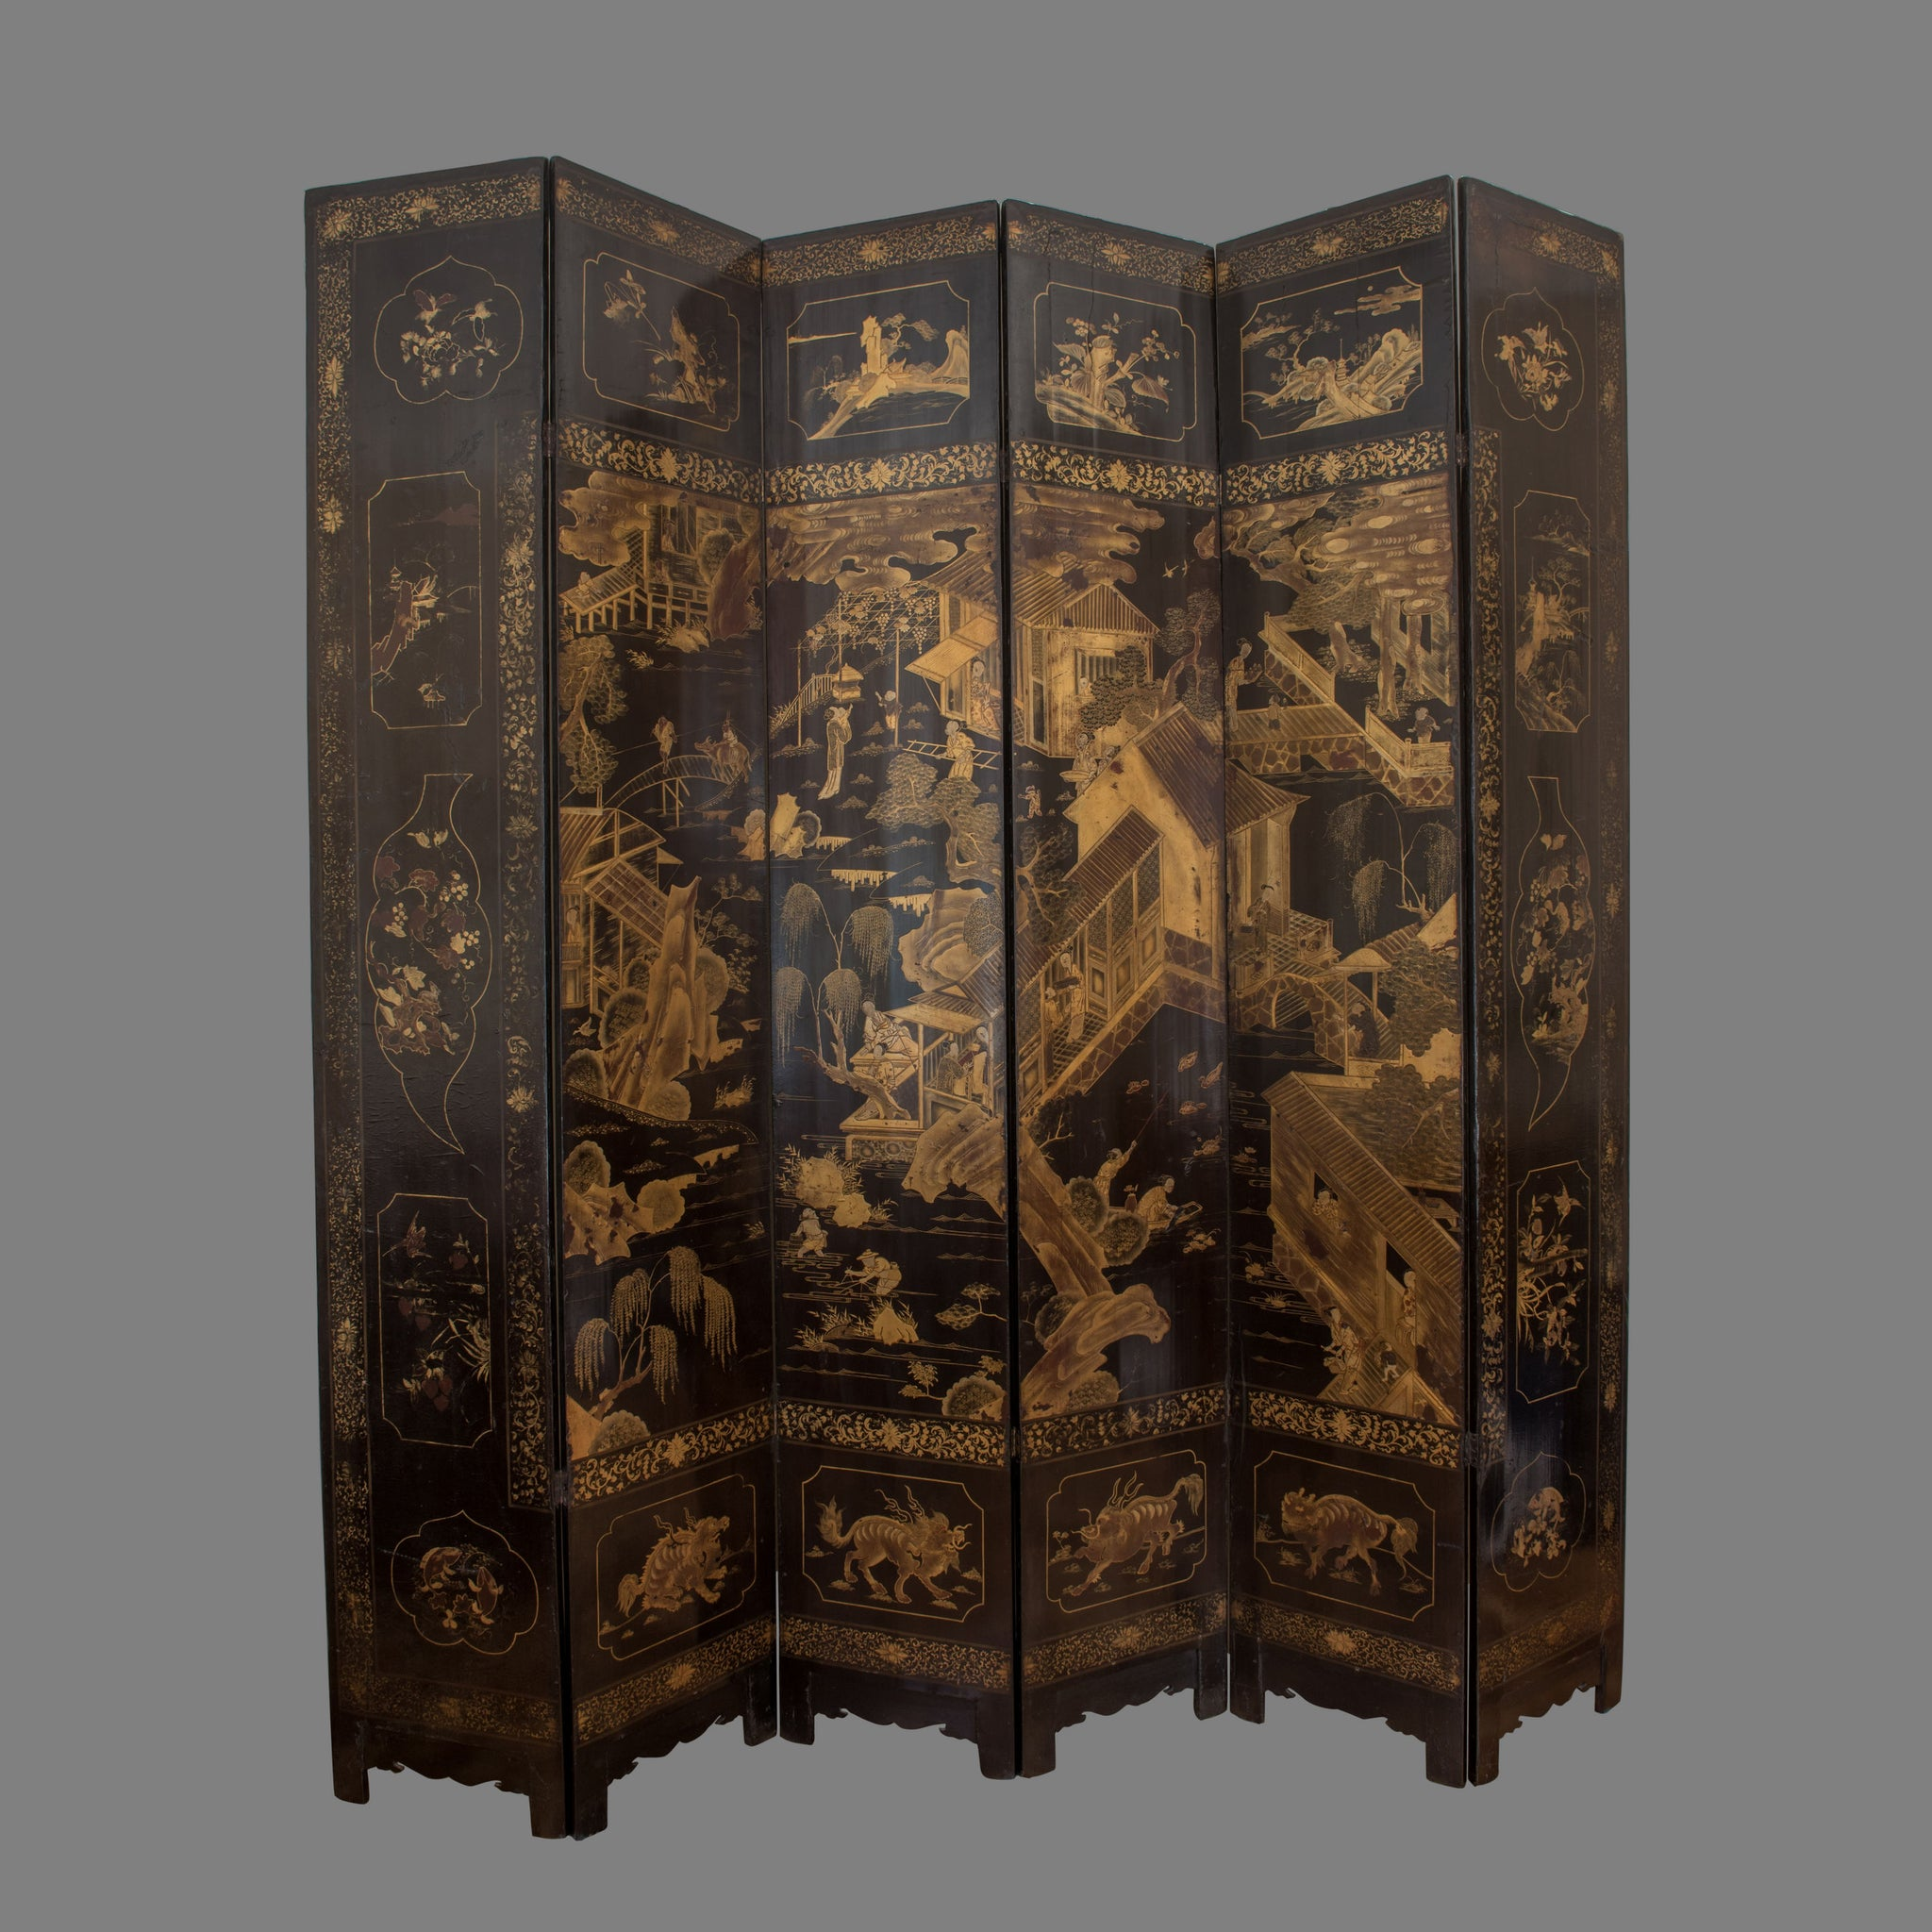 The 'Yale' 18th Century Chinese Screen